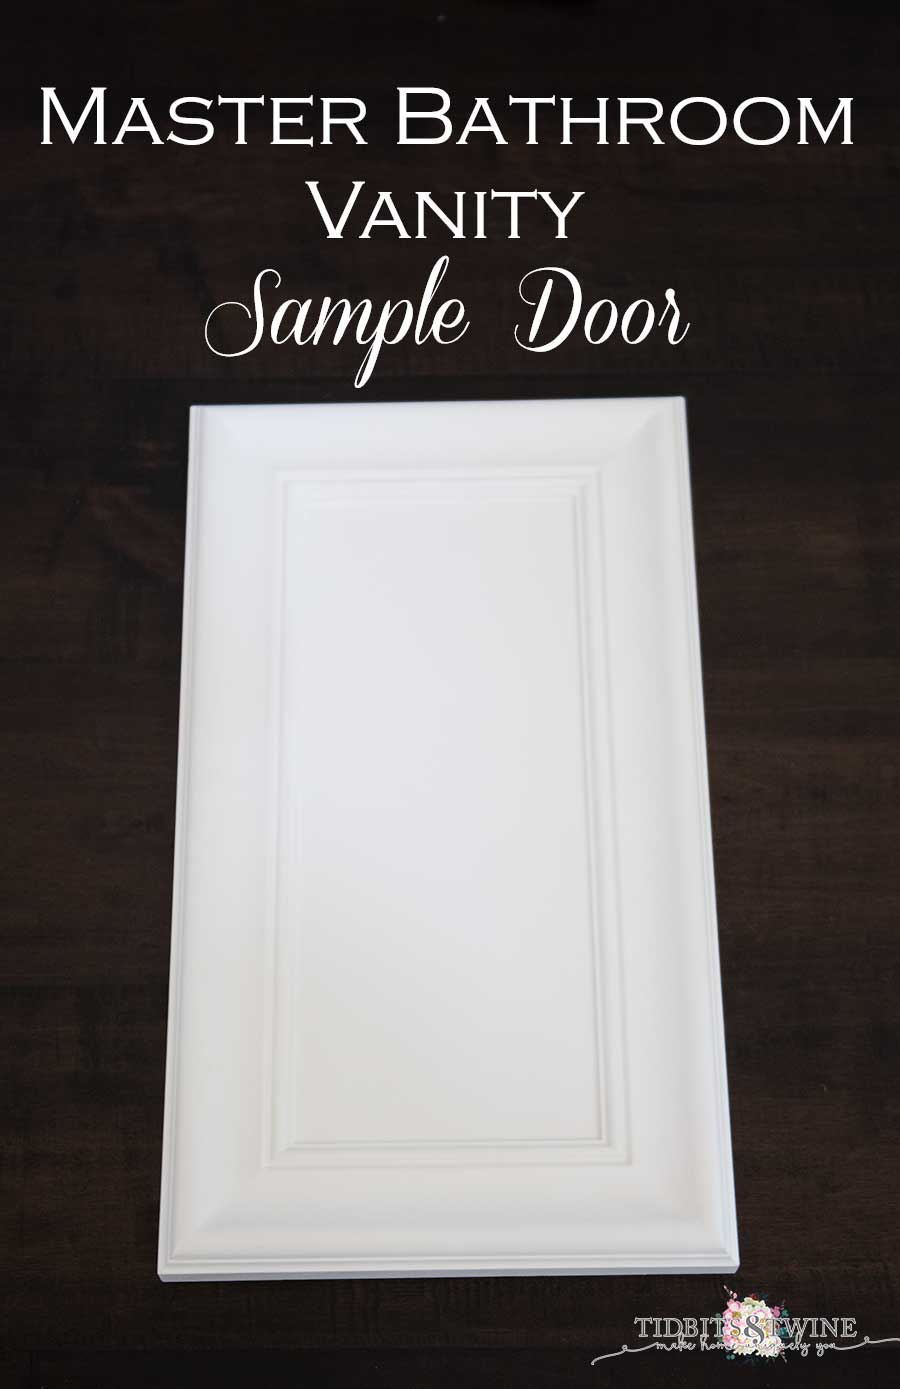 Tidbits&Twine master bathroom sample door